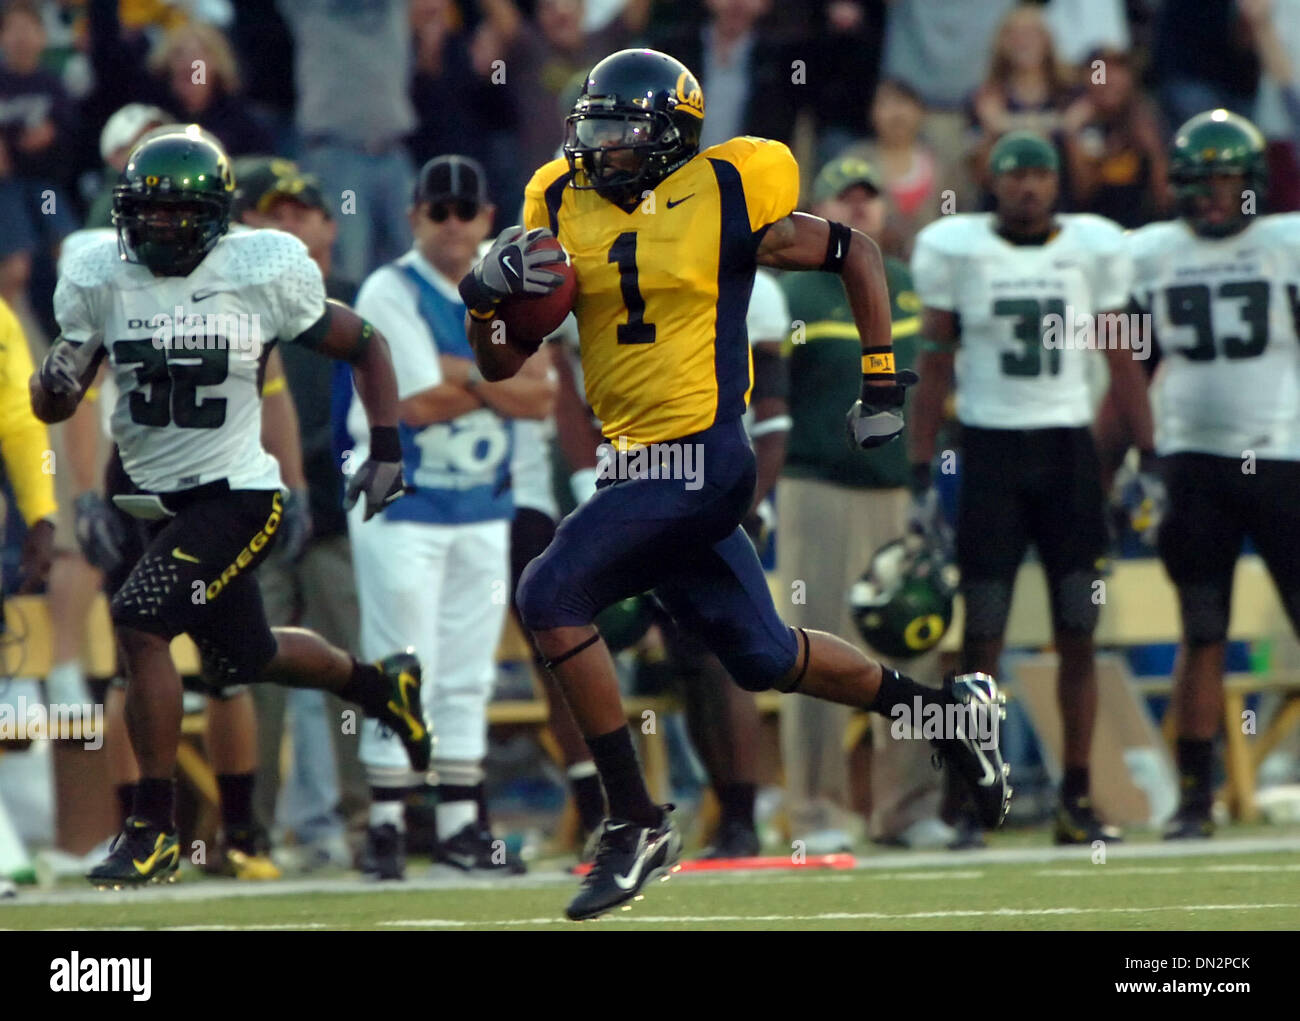 oct-07-2006-berkeley-ca-usa-ncaa-footbal